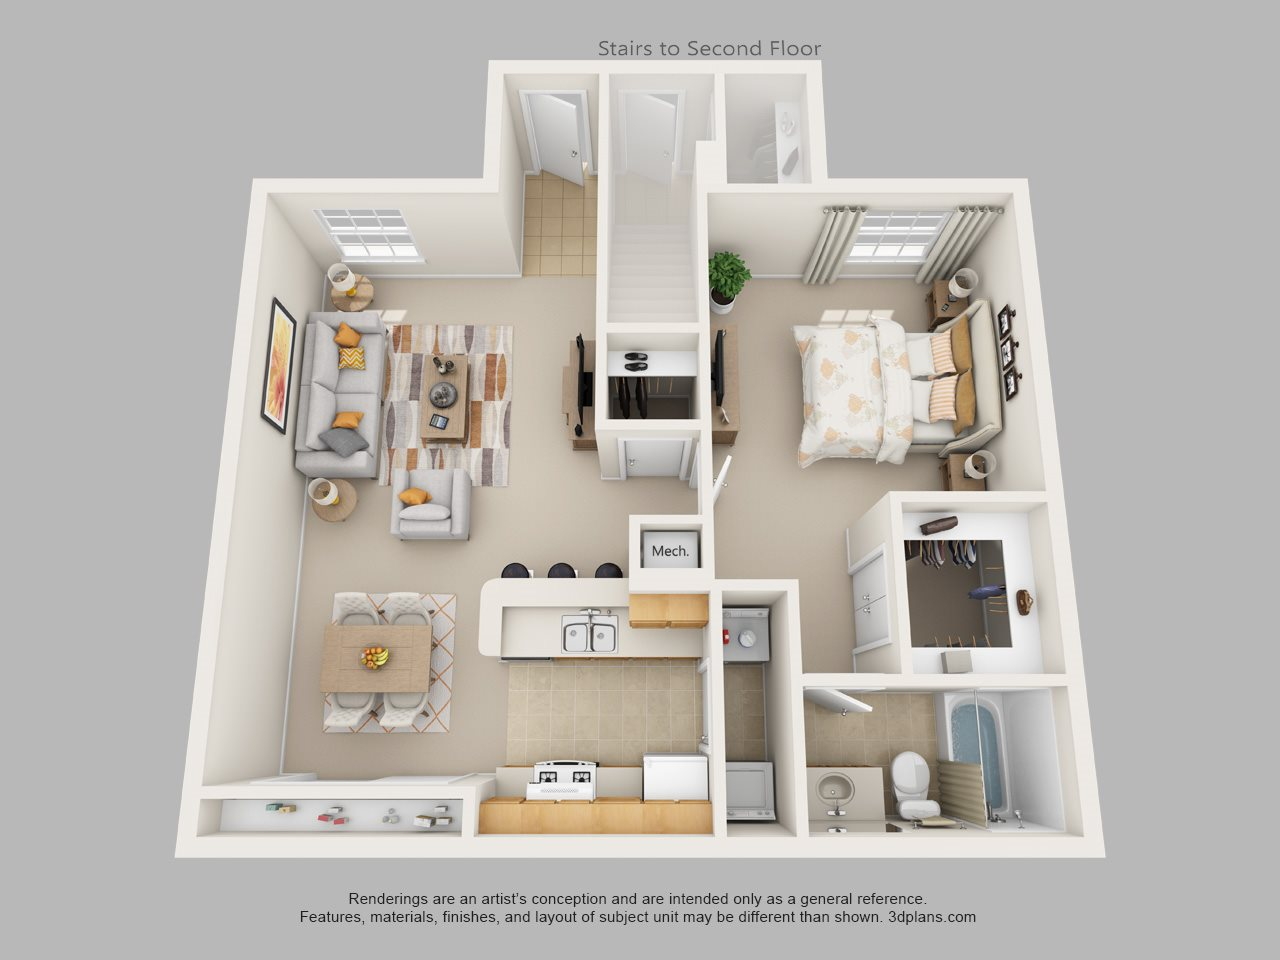 one bedroom one bath floor plan 1 - One Bedroom